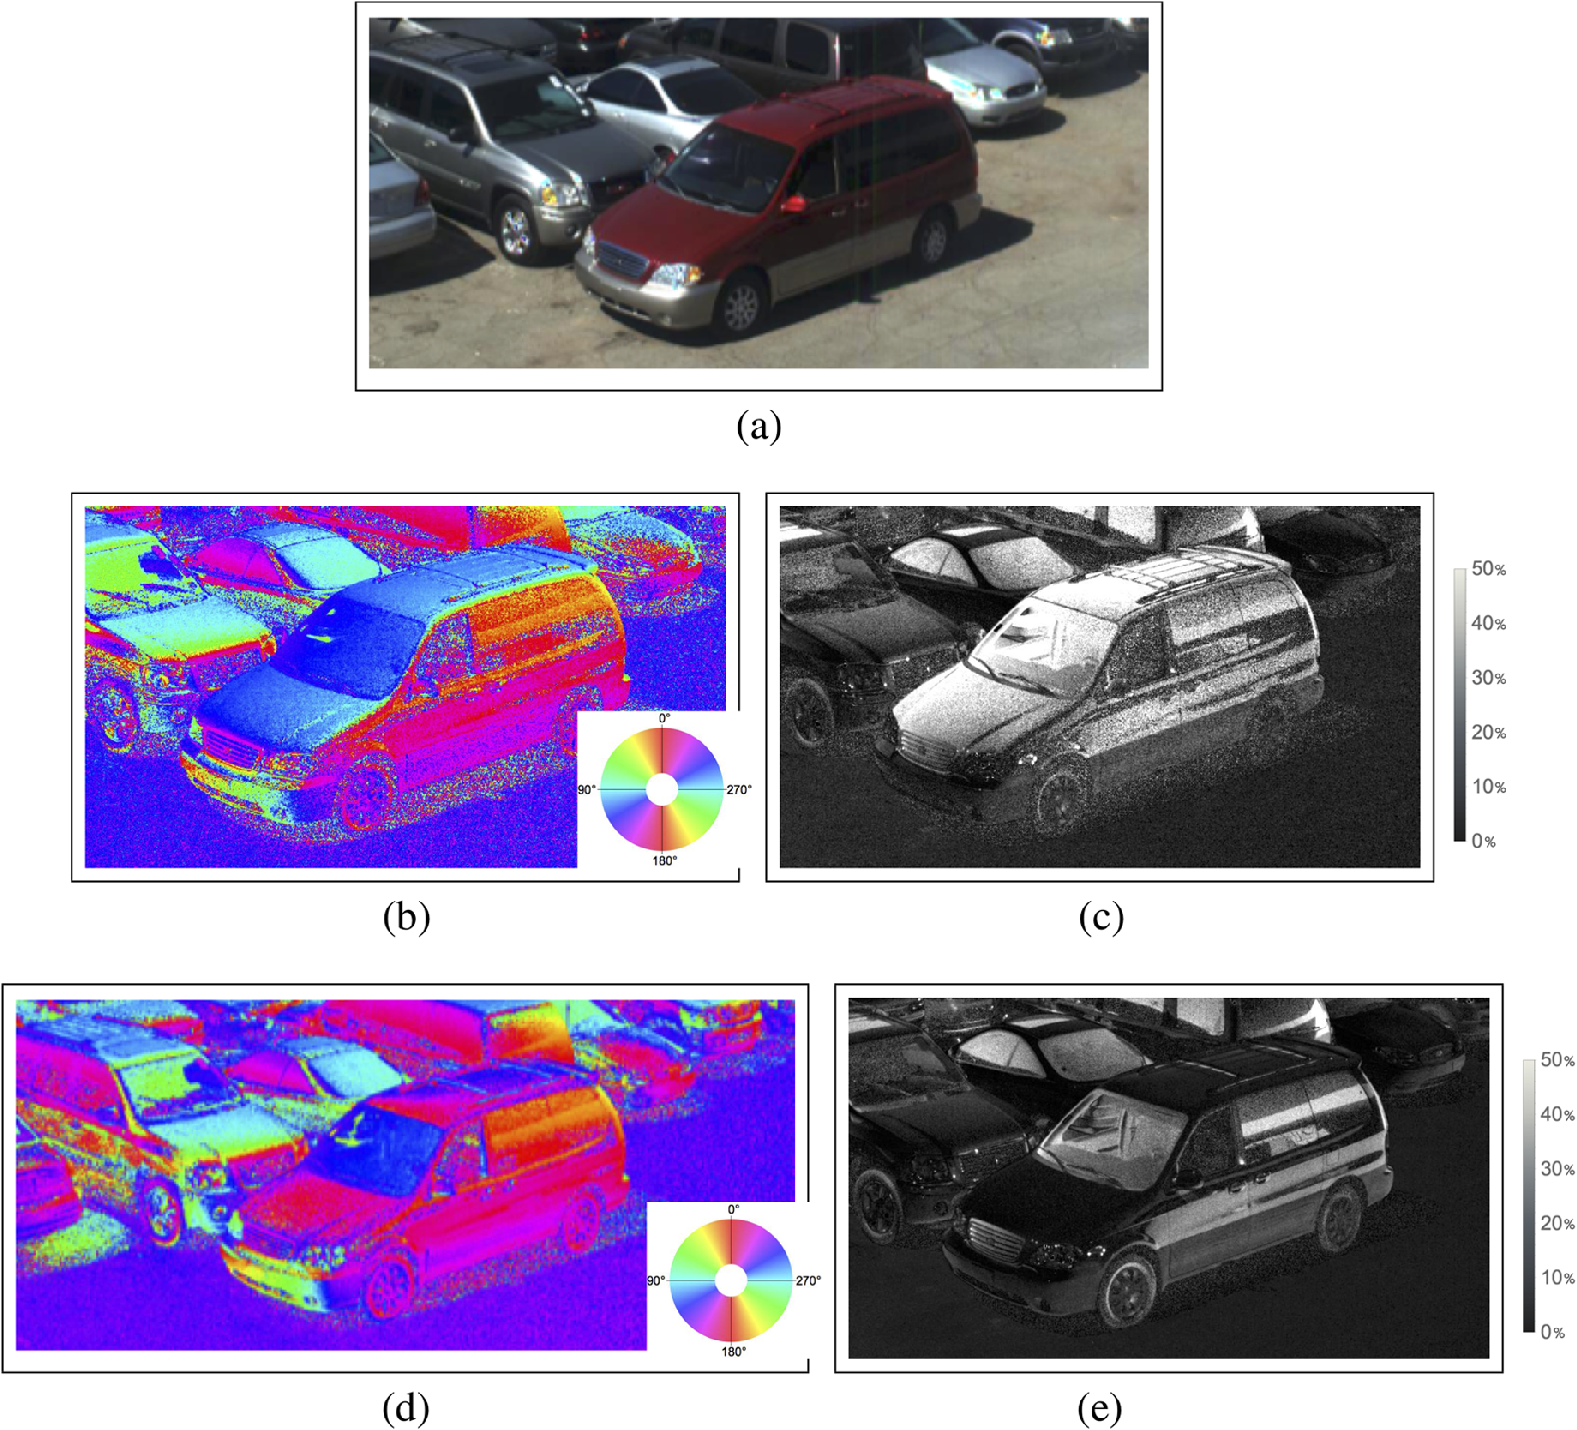 Angle of linear polarization images of outdoor scenes